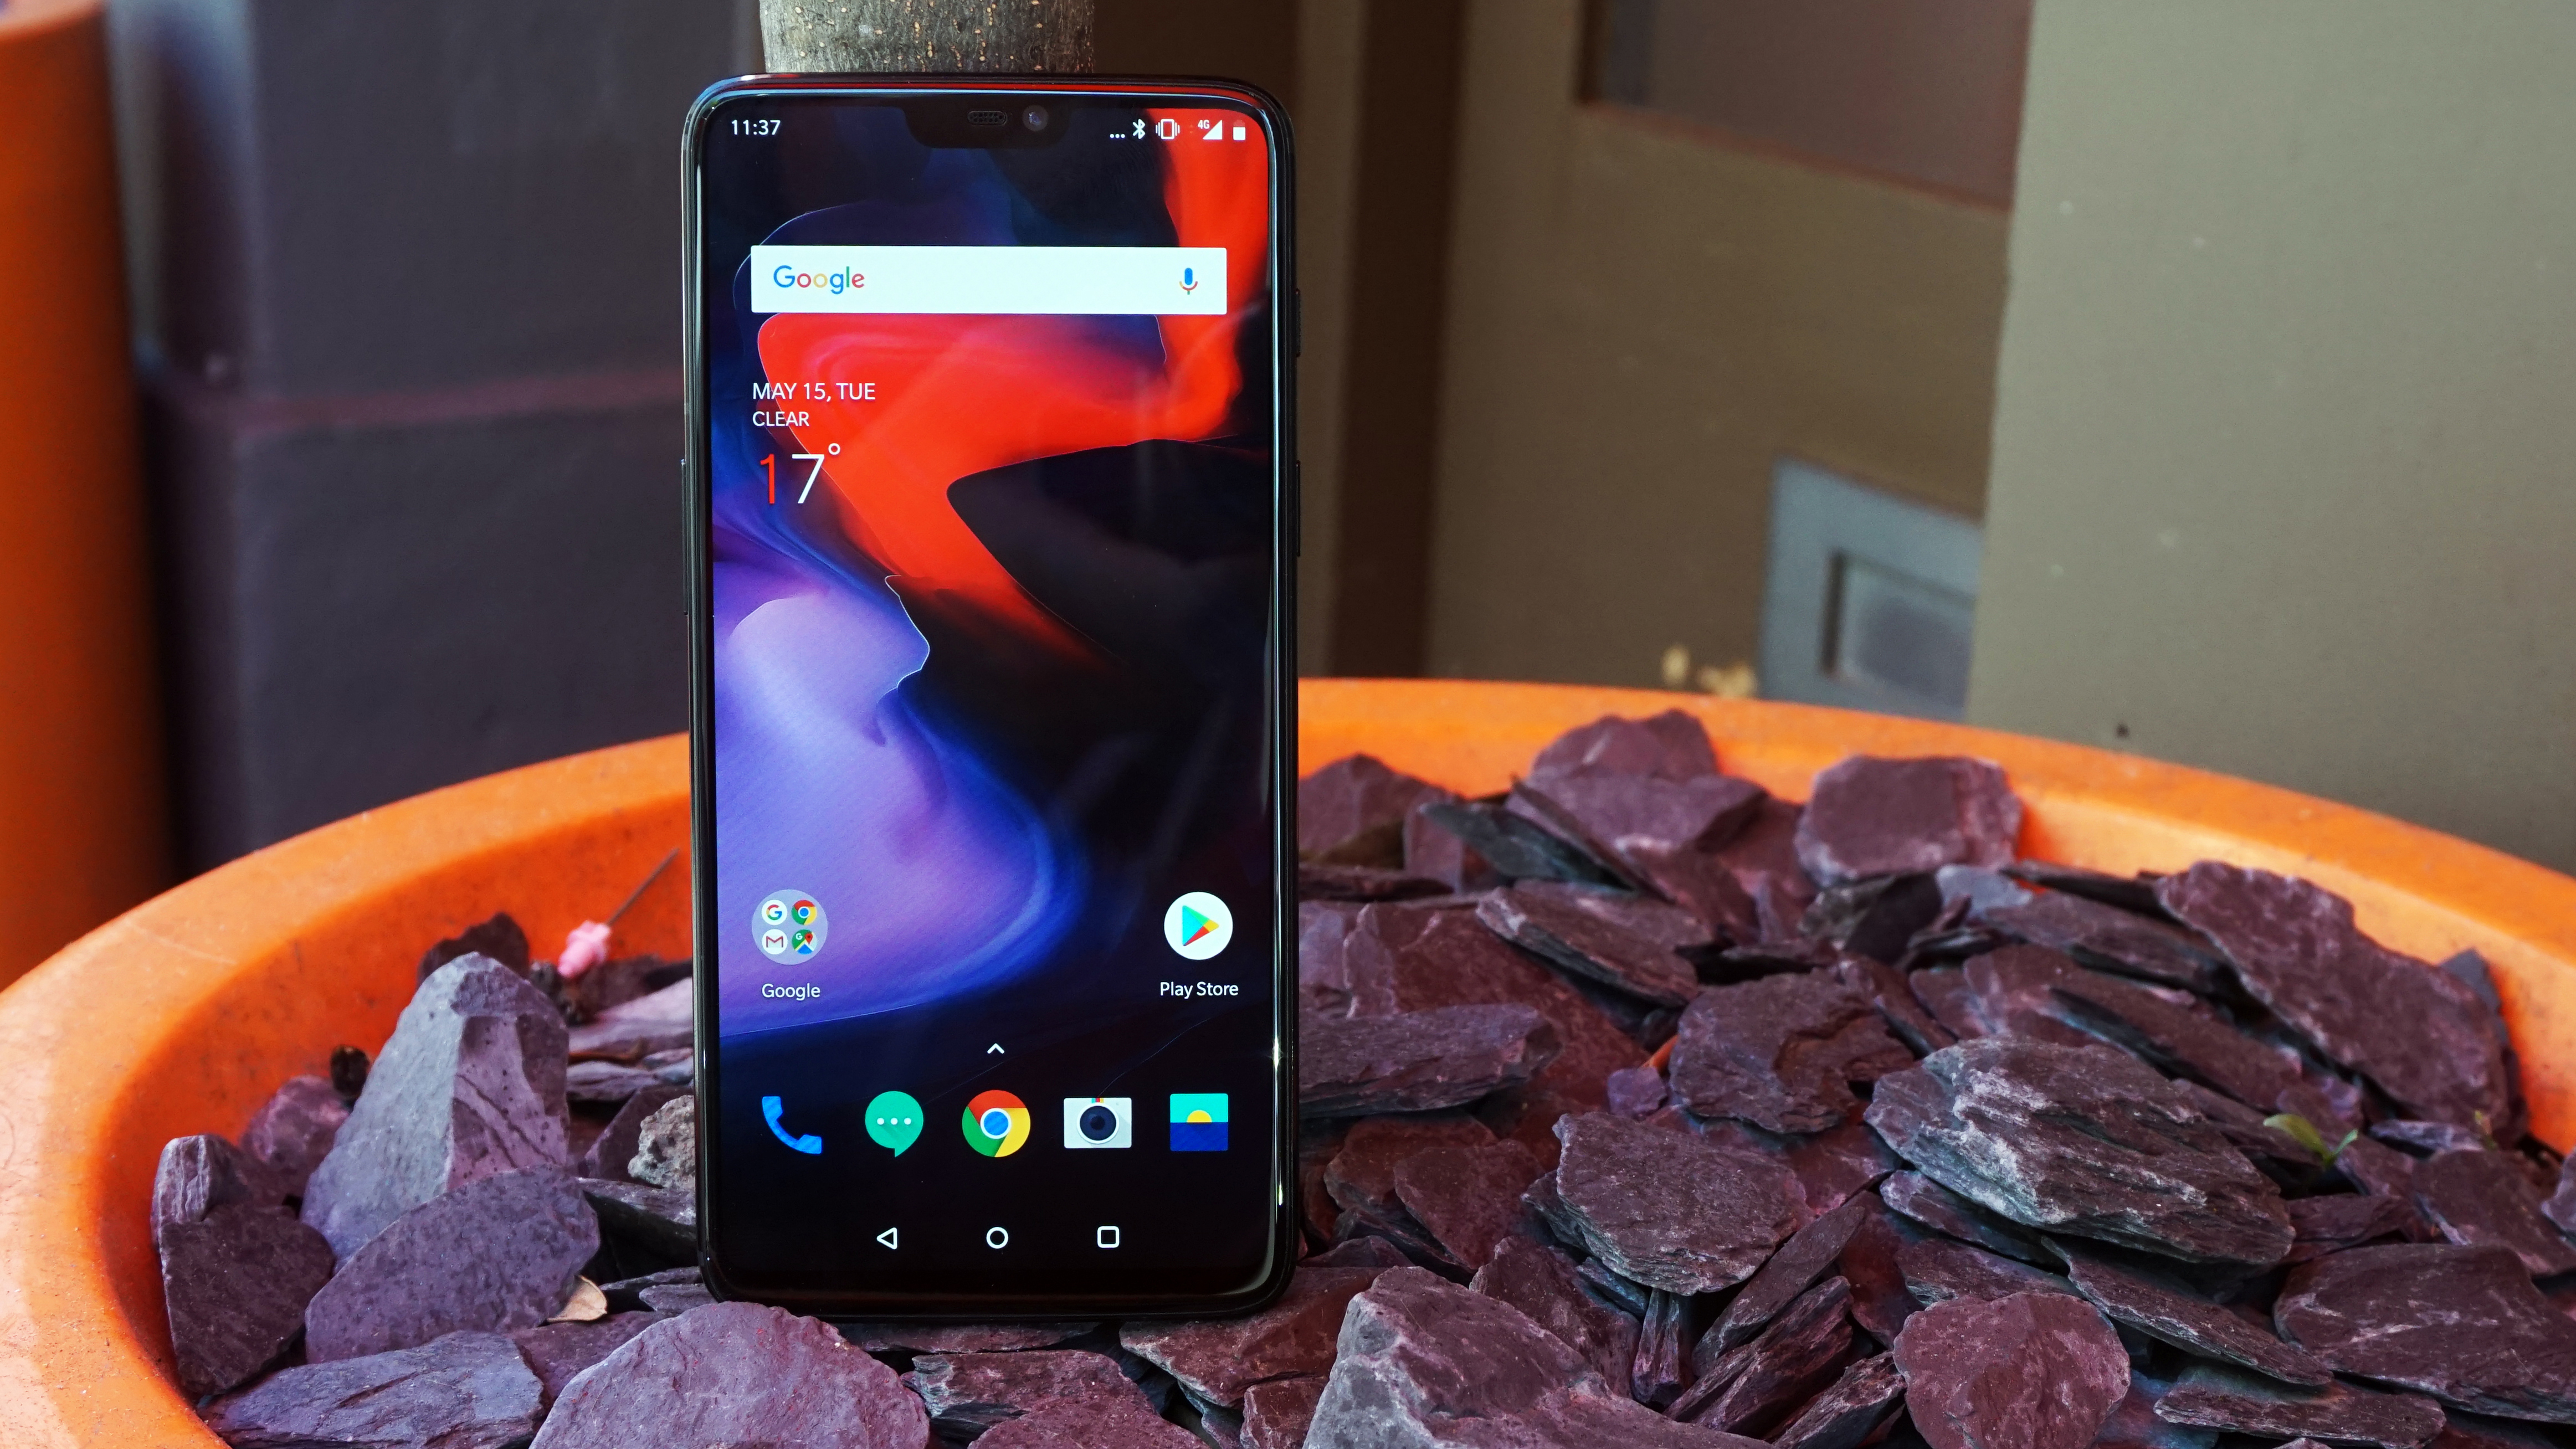 Looks like the OnePlus 6T is getting a bigger battery than the OnePlus 6